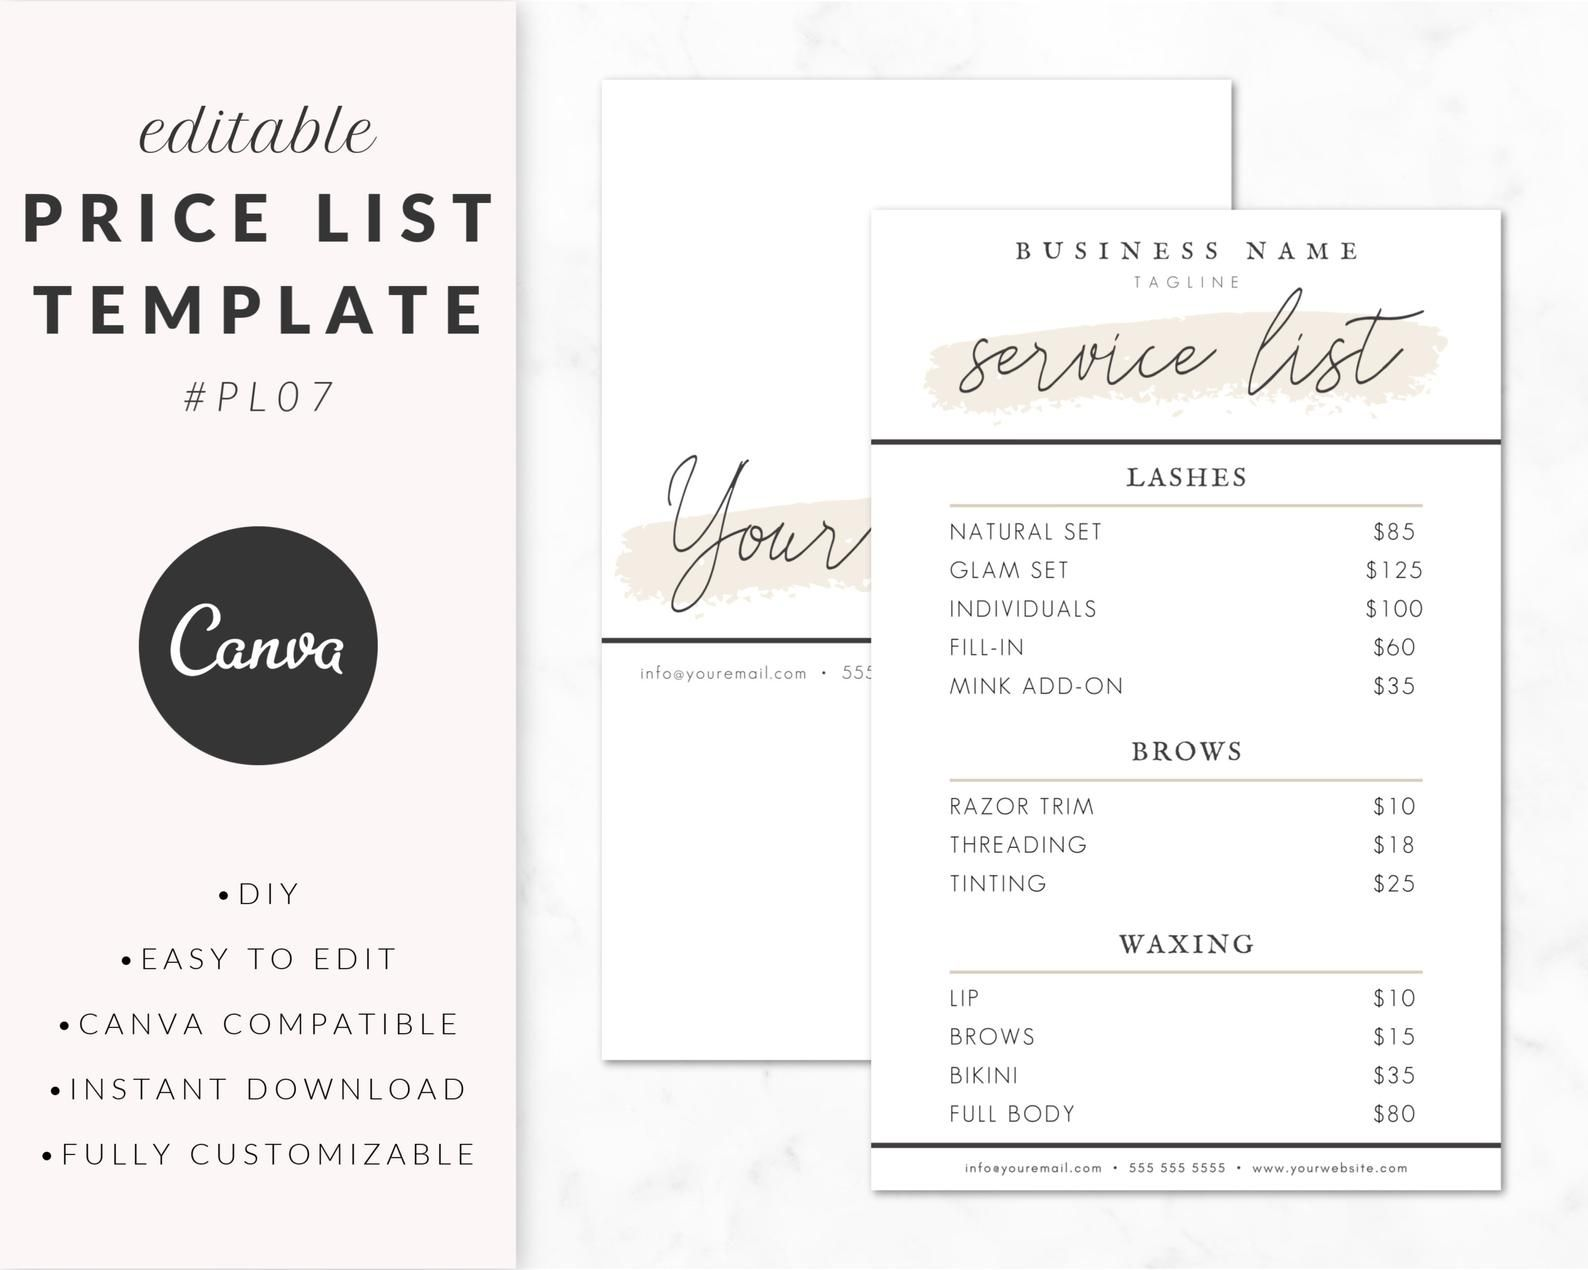 Price List Template For Canva Service List Design Guide Etsy Price List Template Invoice Design List Template